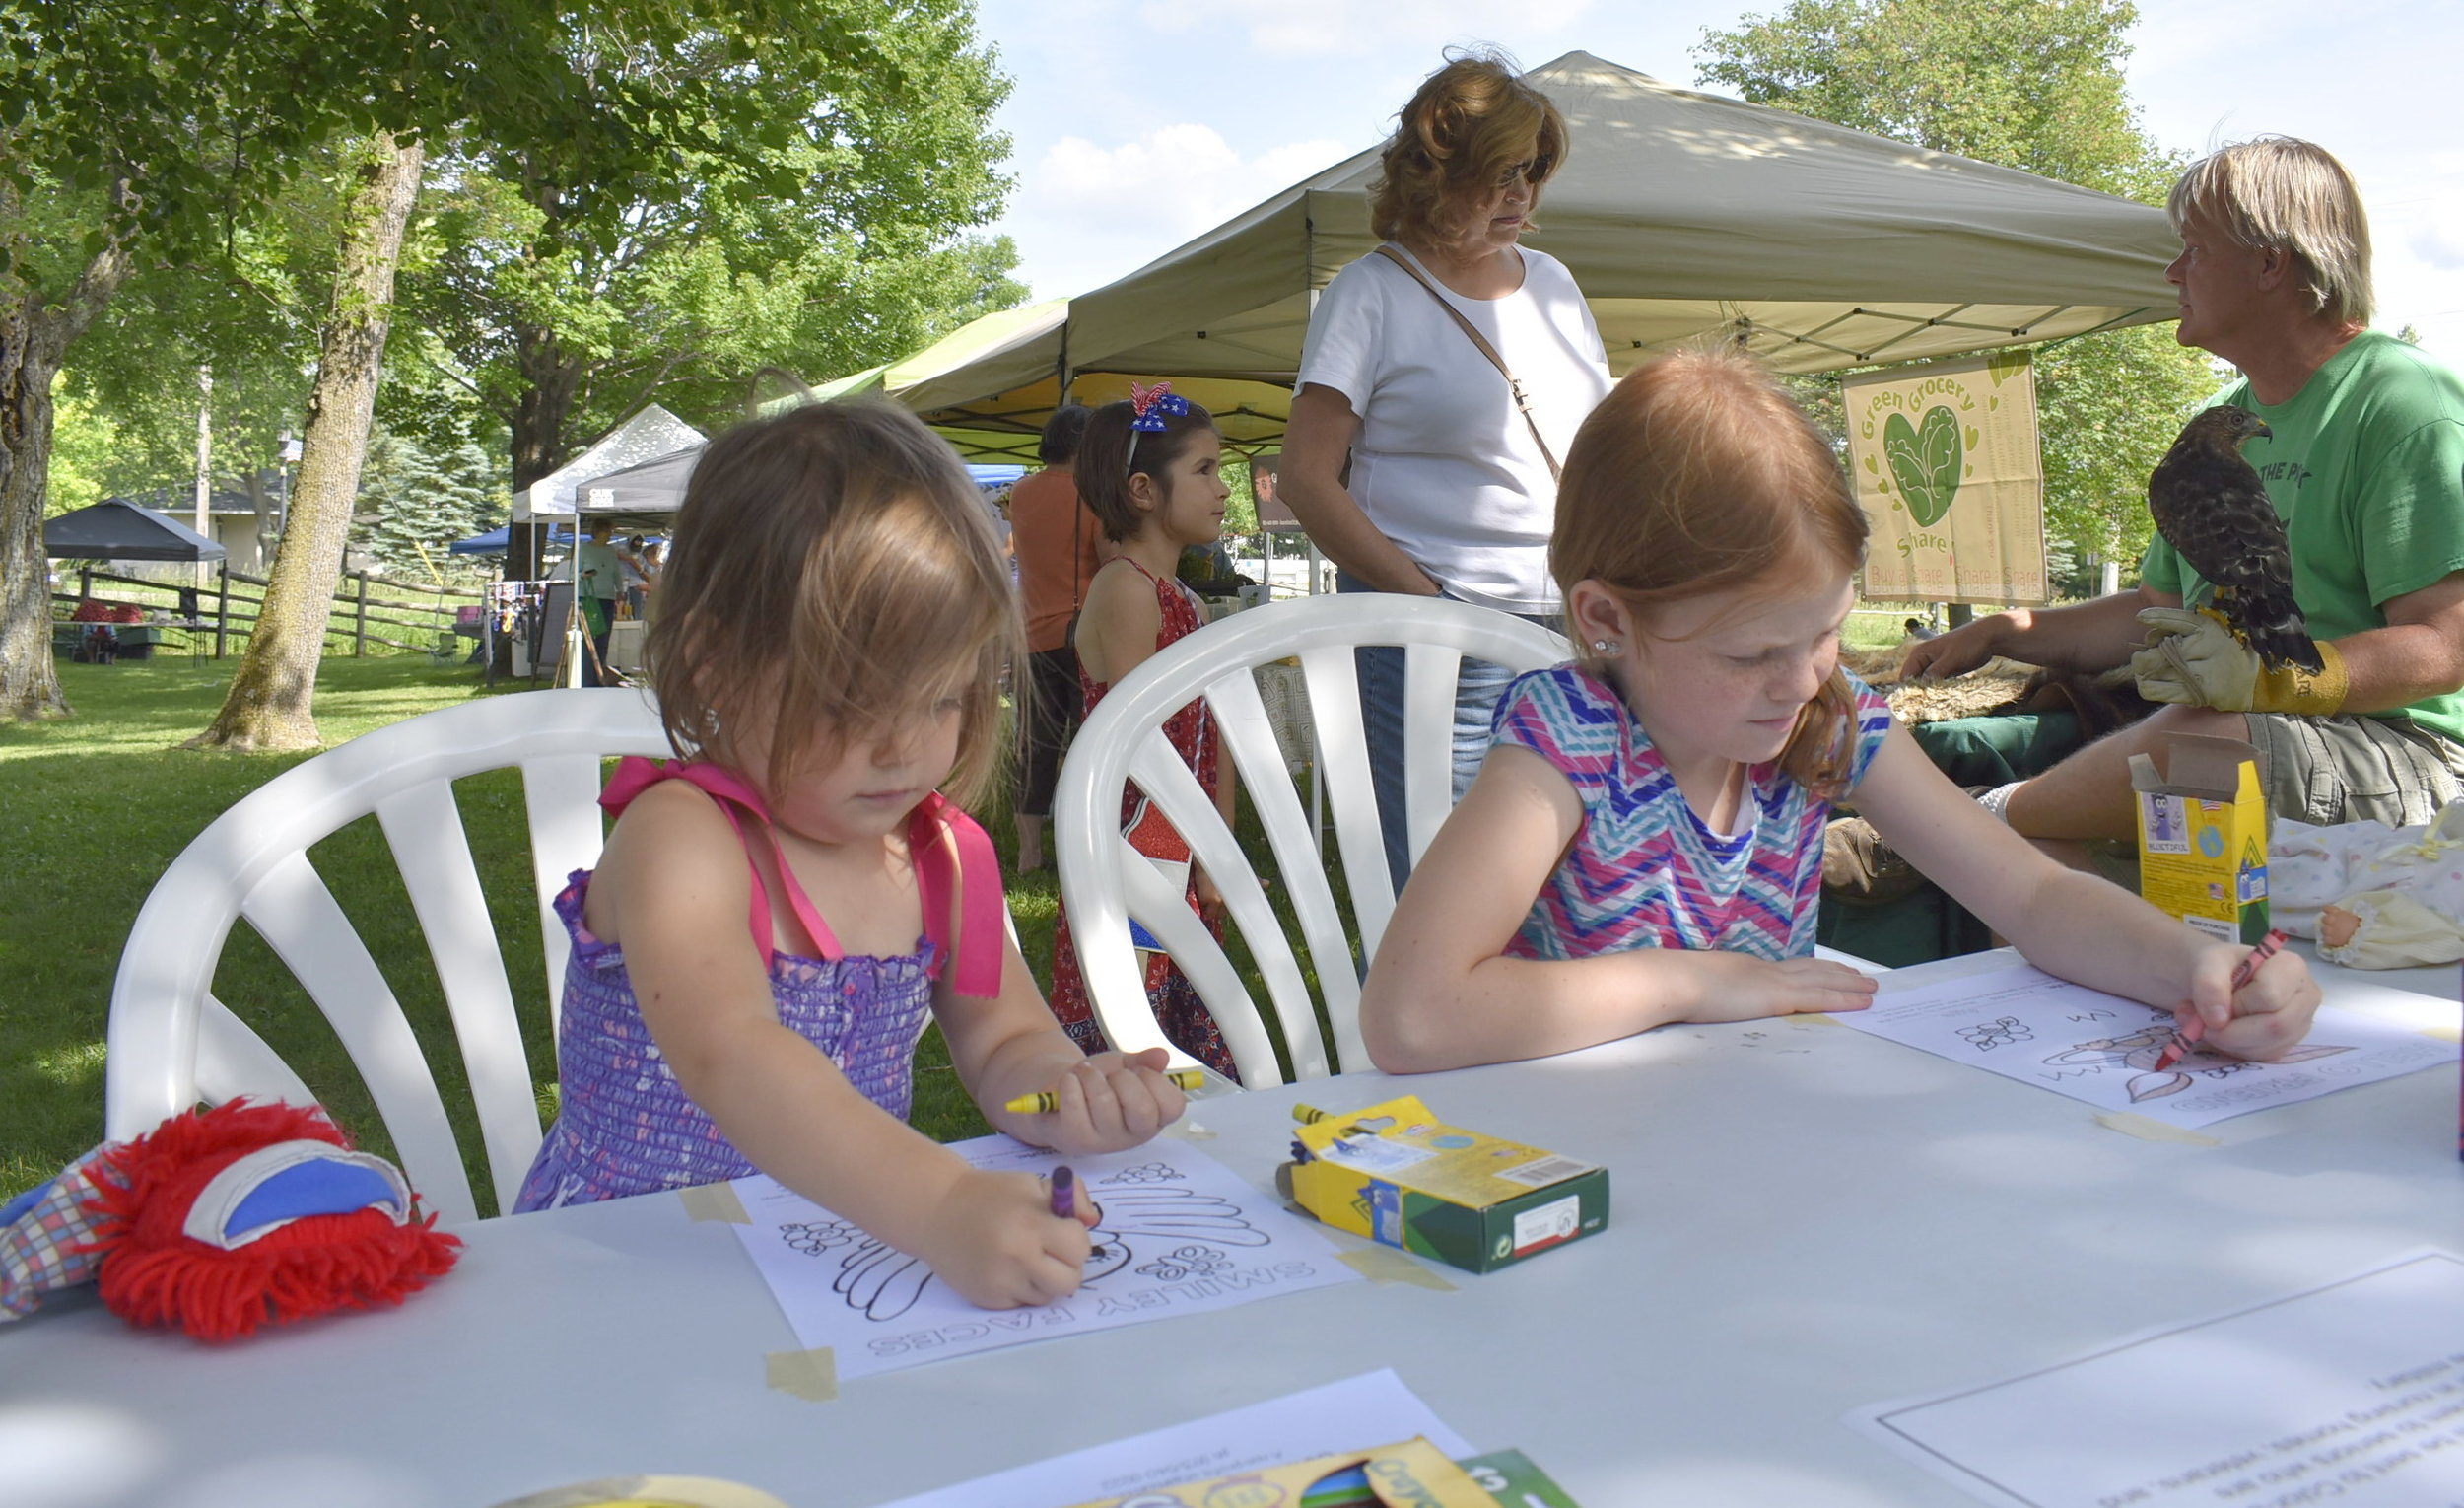 Two girls coloring photos for Color-a-Smile. The pictures will be sent to seniors in nursing homes, the homebound, veterans, and active servicemen/women throughout the U.S. and world.